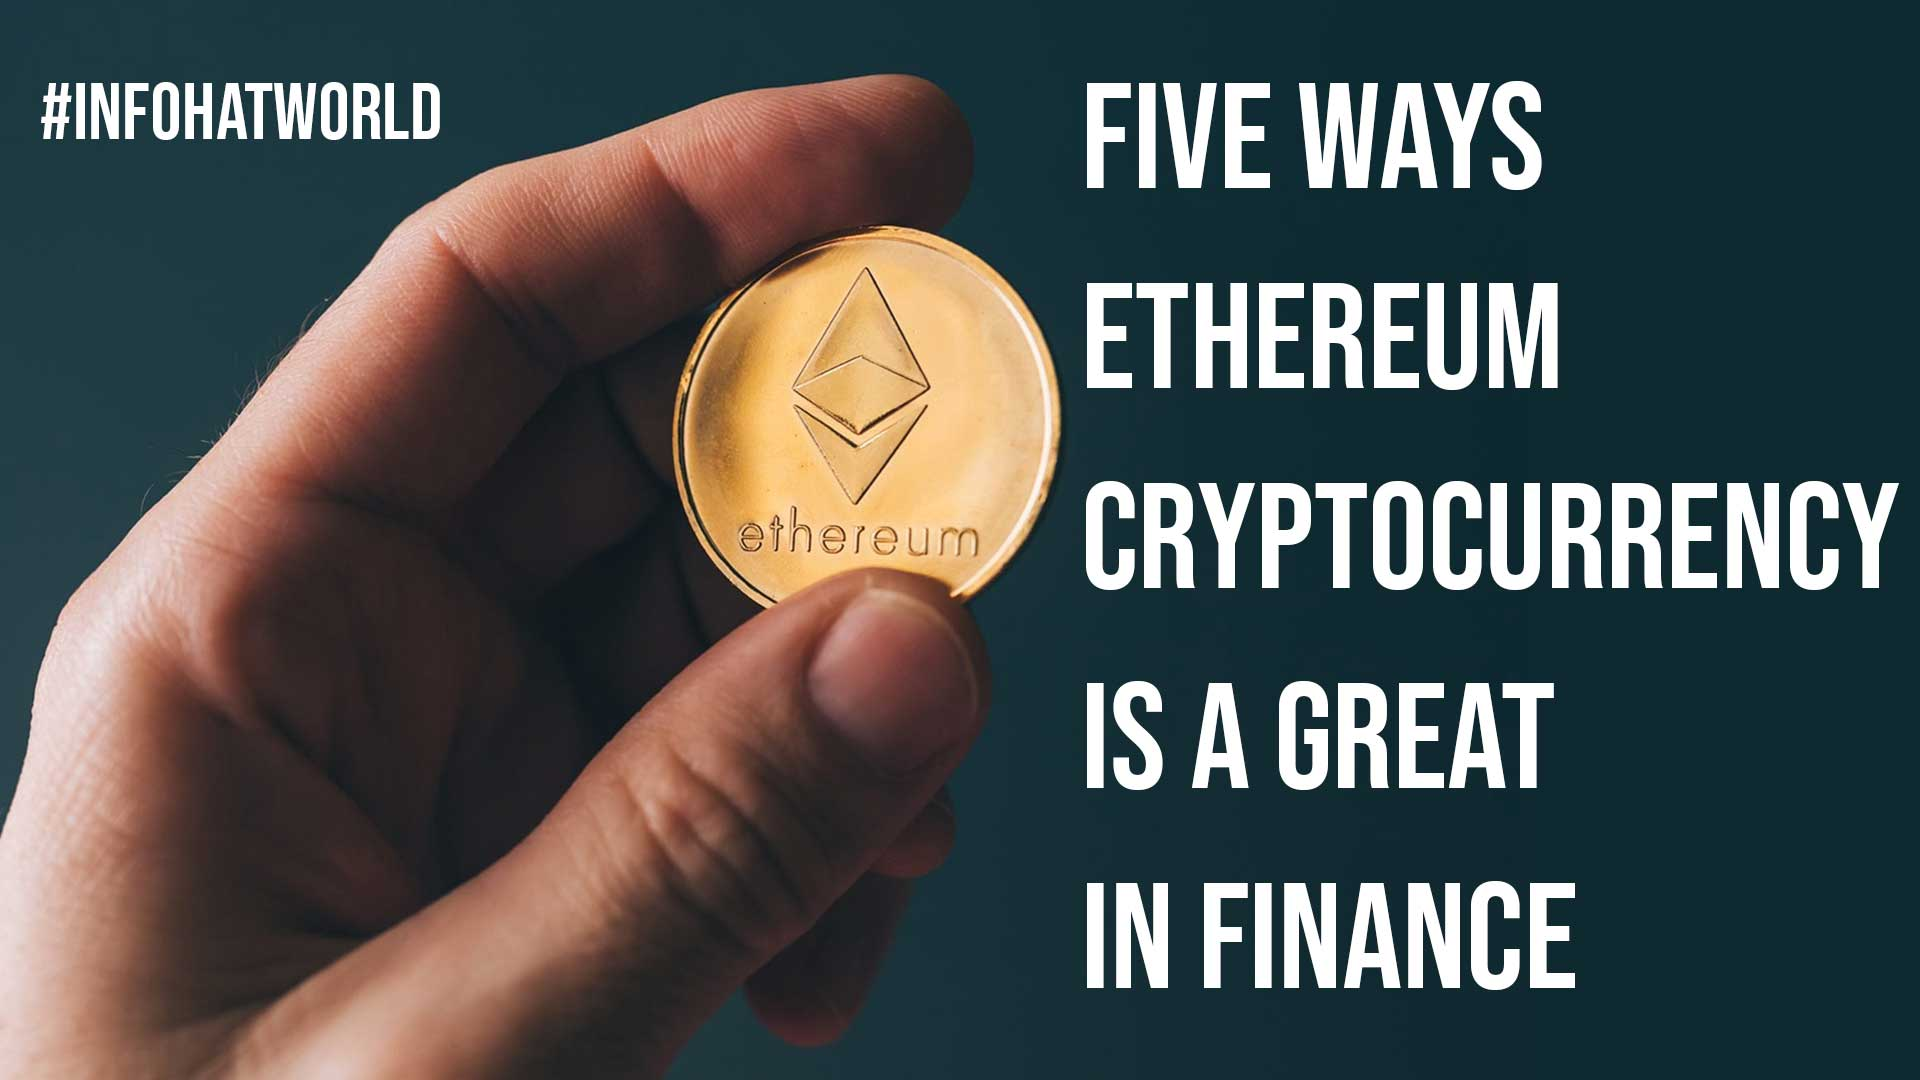 Five Ways Ethereum Cryptocurrency Is a Great in Finance